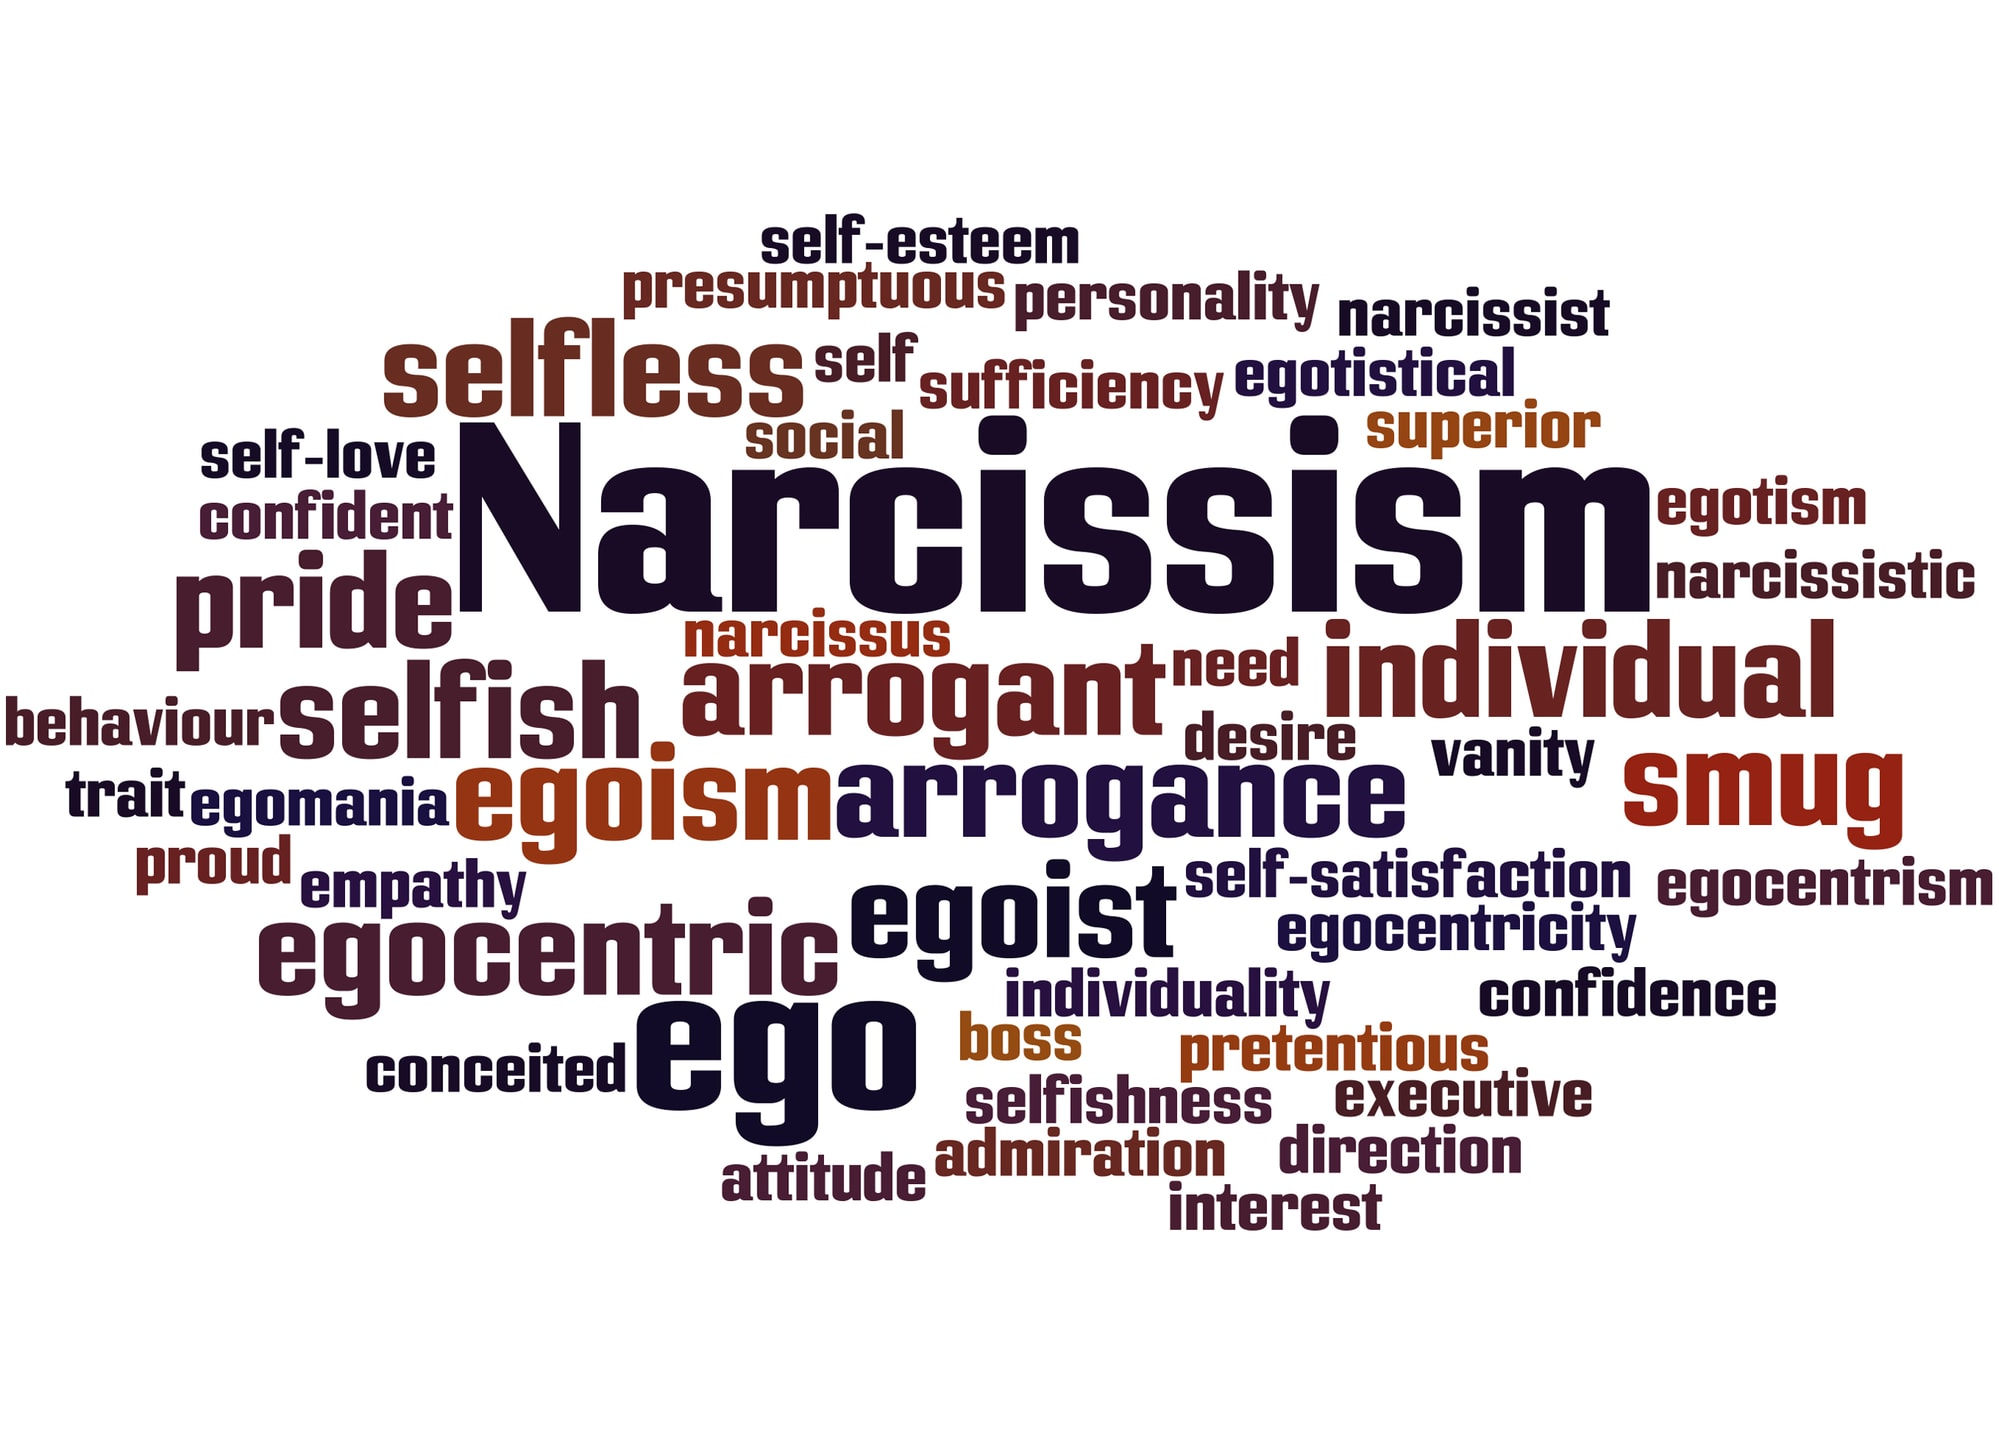 divorced from a narcissist